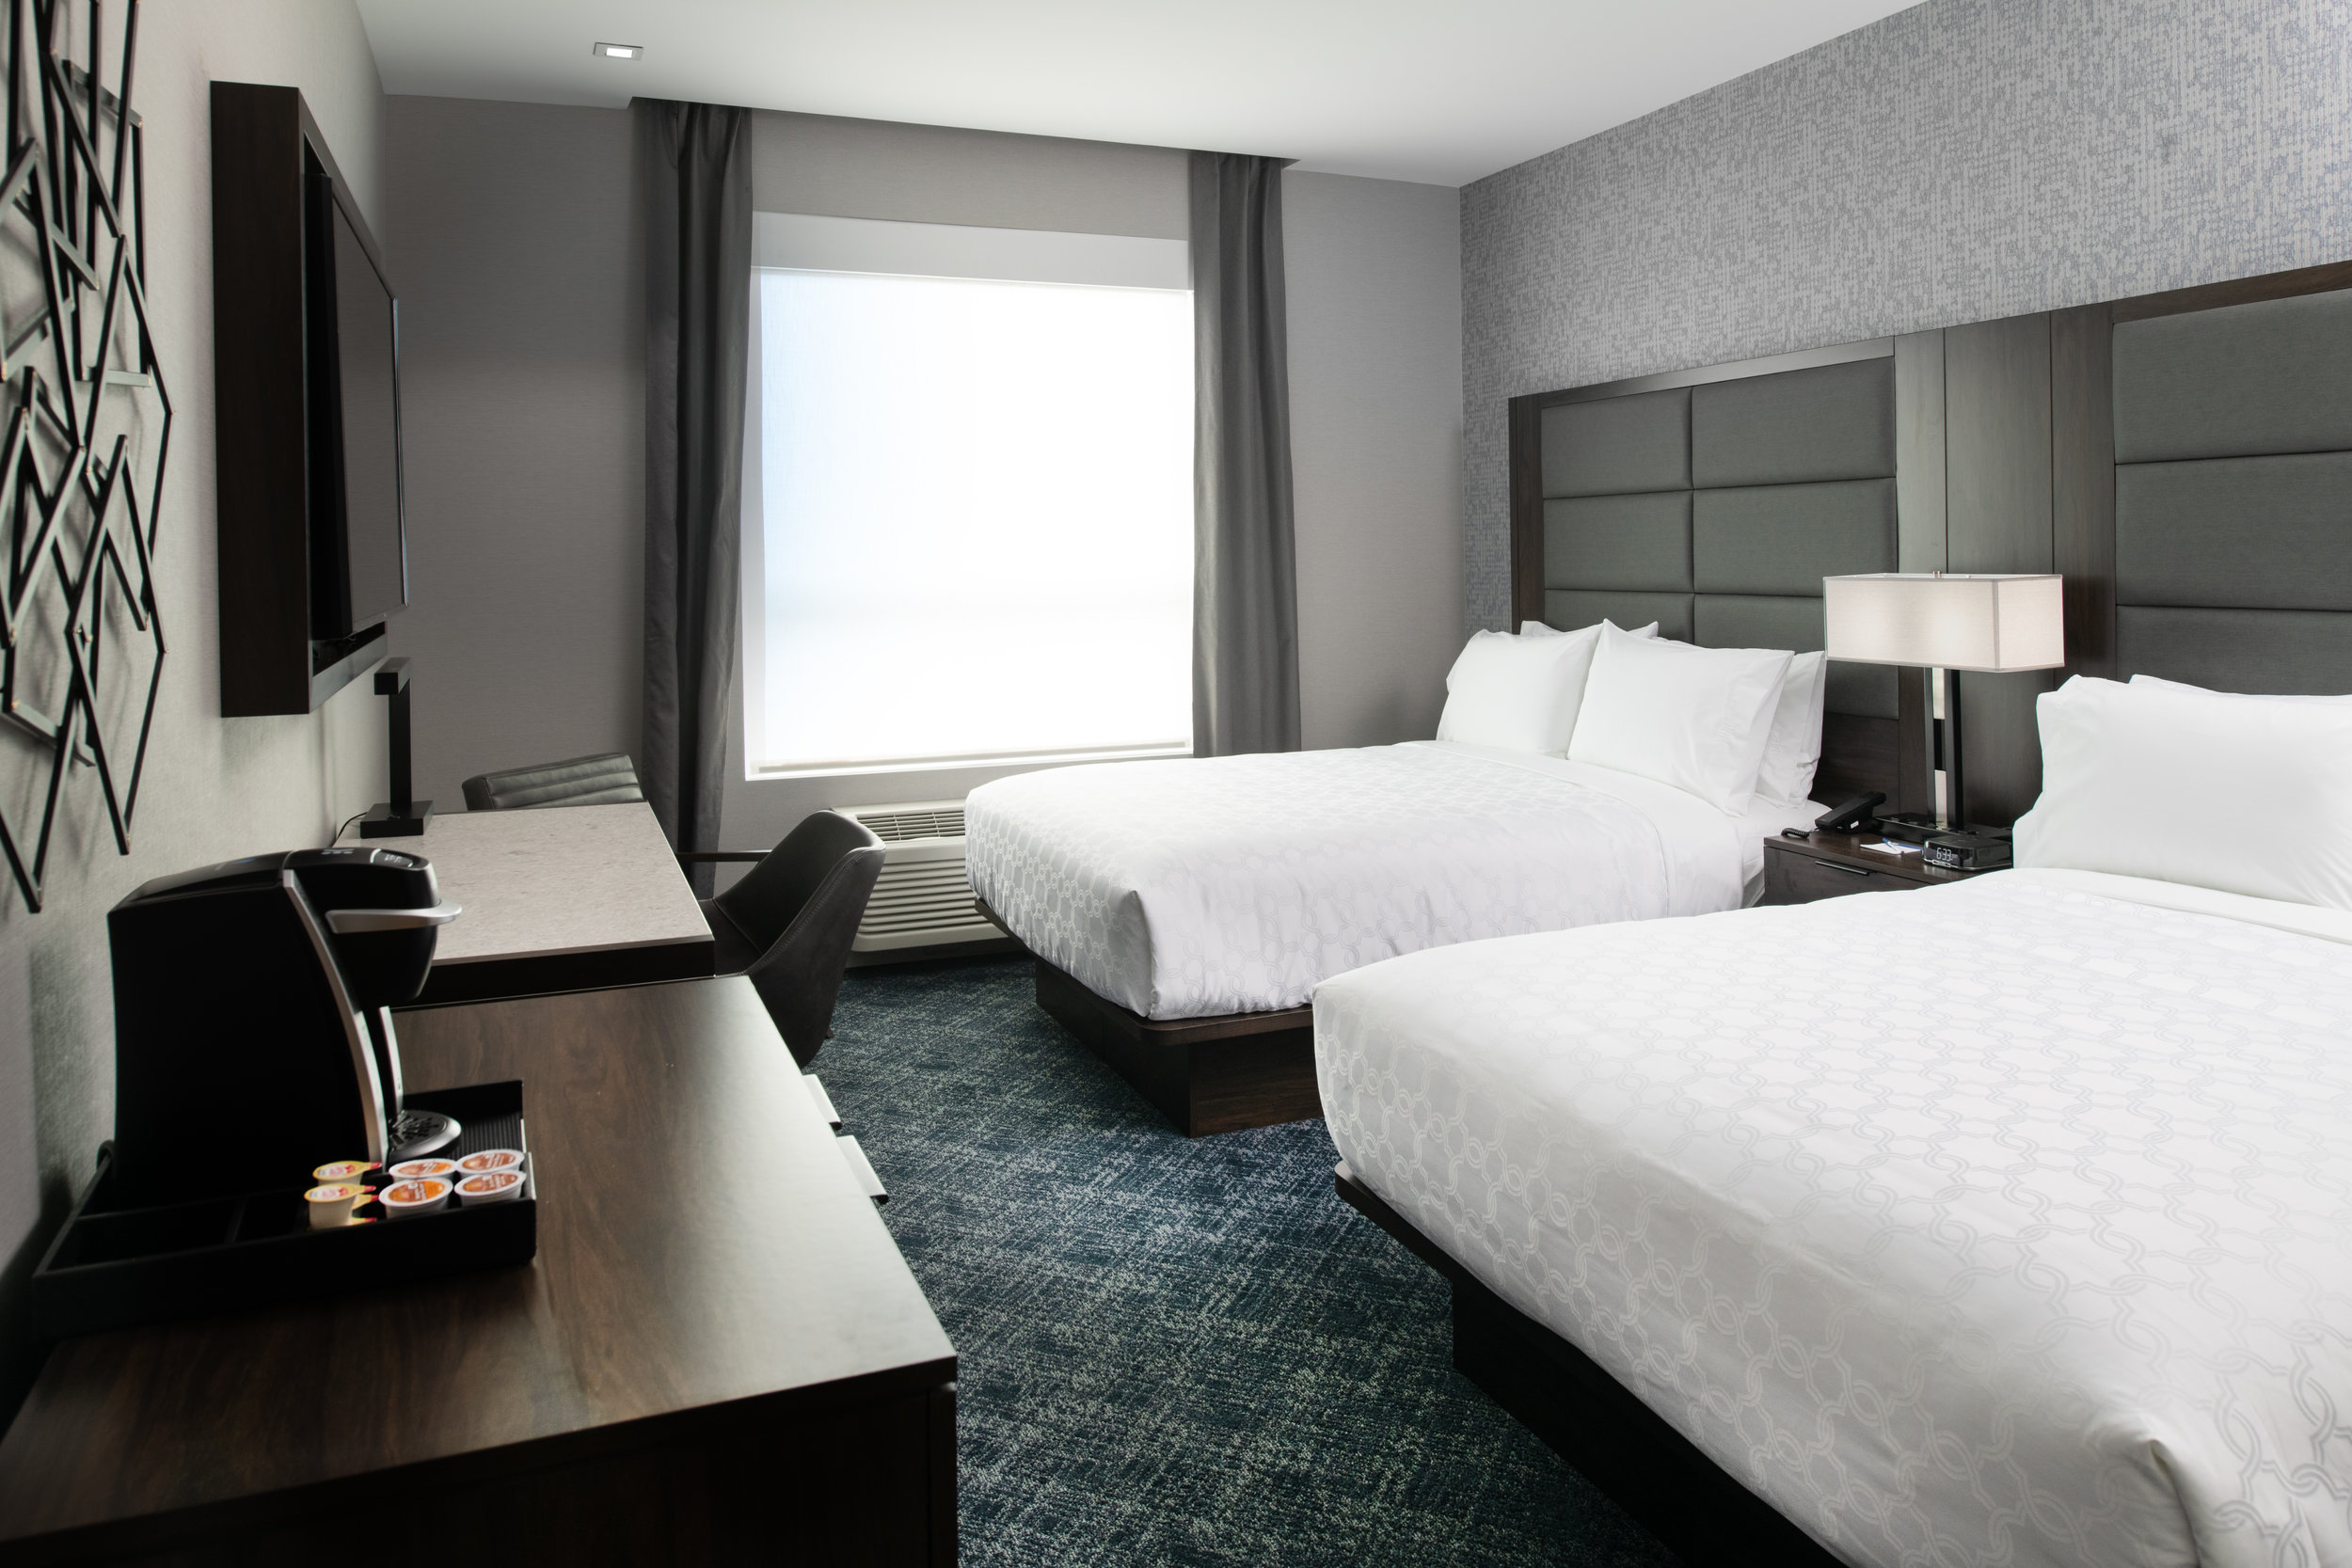 Holiday Inn Express Boston-Quincy - The Holiday Inn Express offers 92 guestrooms featuring a modern design providing a fresh, contemporary space including multi-functional seating, plush bedding and smart bedside charging outlets.